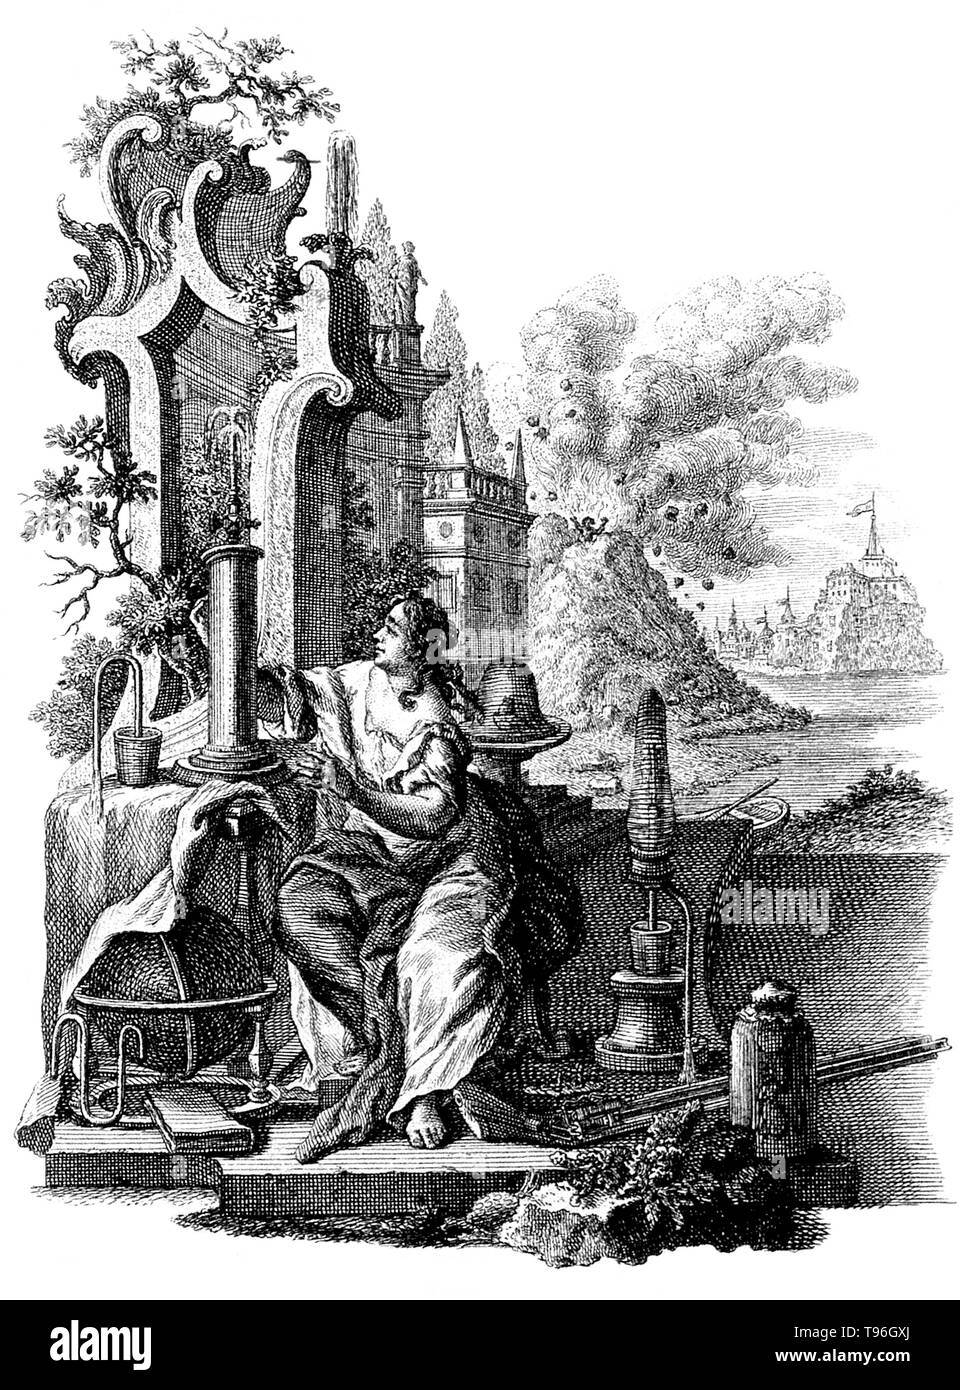 Figures representing the investigation of nature; in the background, Pliny the elder being killed while investigating Vesuvius during its eruption. Gaius Plinius Secundus (AD 23 - AD 79), better known as Pliny the Elder, was a Roman author, naturalist, and natural philosopher, as well as naval and army commander of the early Roman Empire, and personal friend of the emperor Vespasian. He wrote an encyclopedic work, Naturalis Historia, which became a model for all other encyclopedias. He died while attempting to rescue a friend and his family from the eruption of Mount Vesuvius that had just des - Stock Image